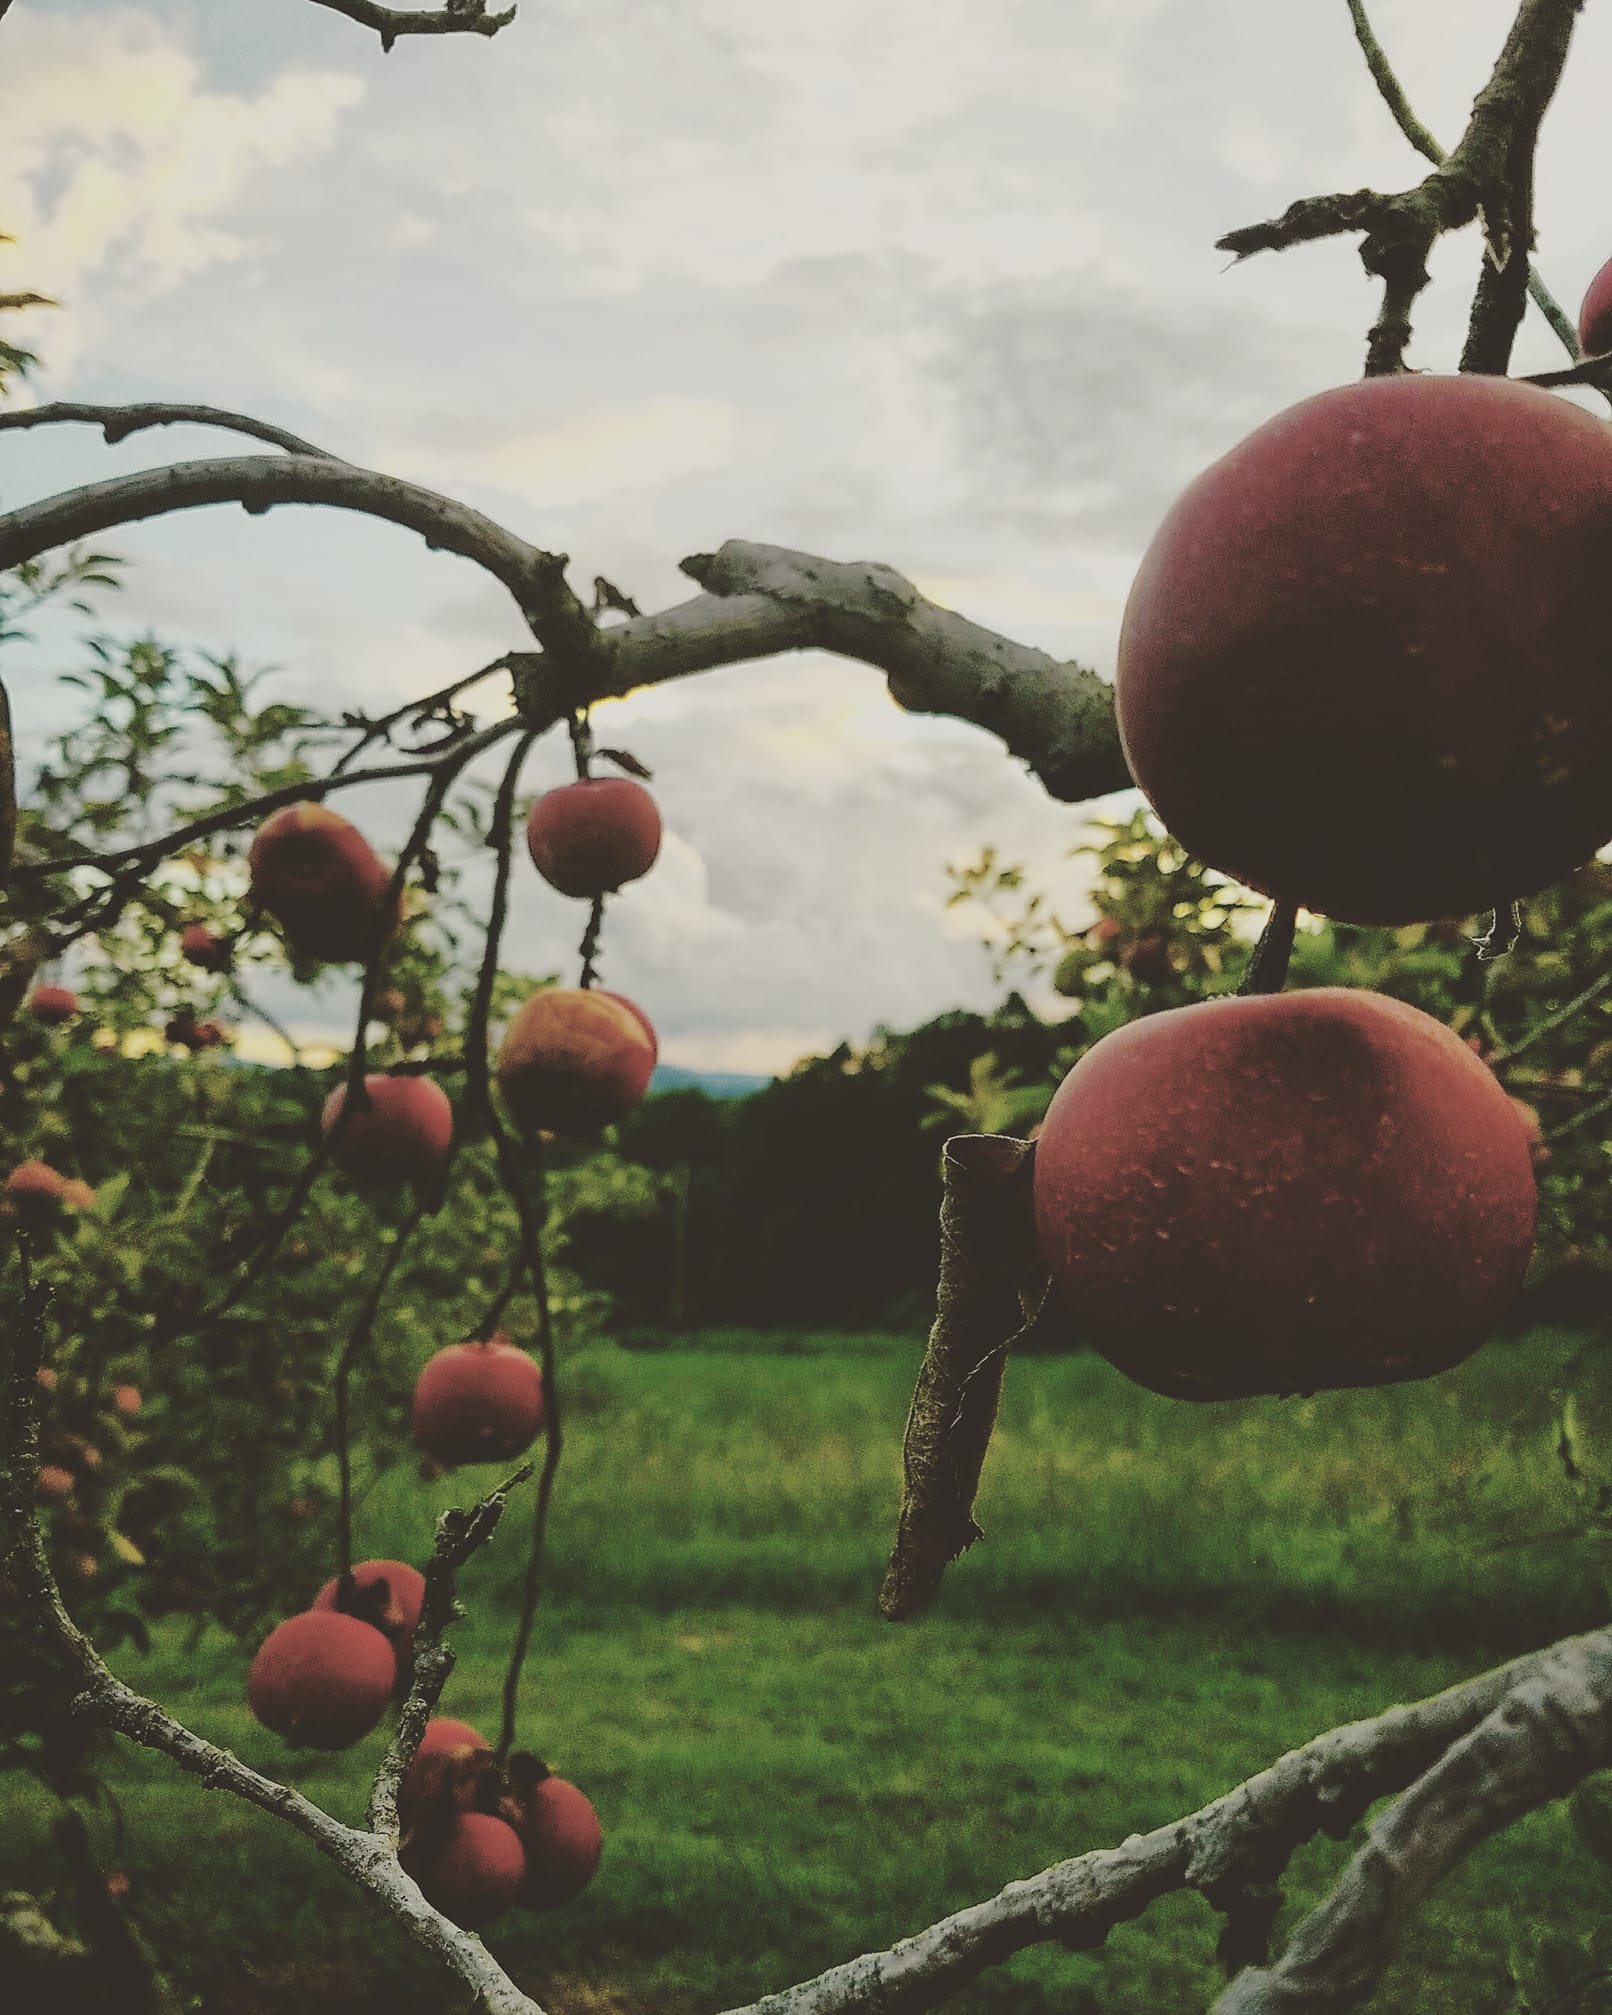 Apples at Deep Roots Orchard in McCaysville, Georgia